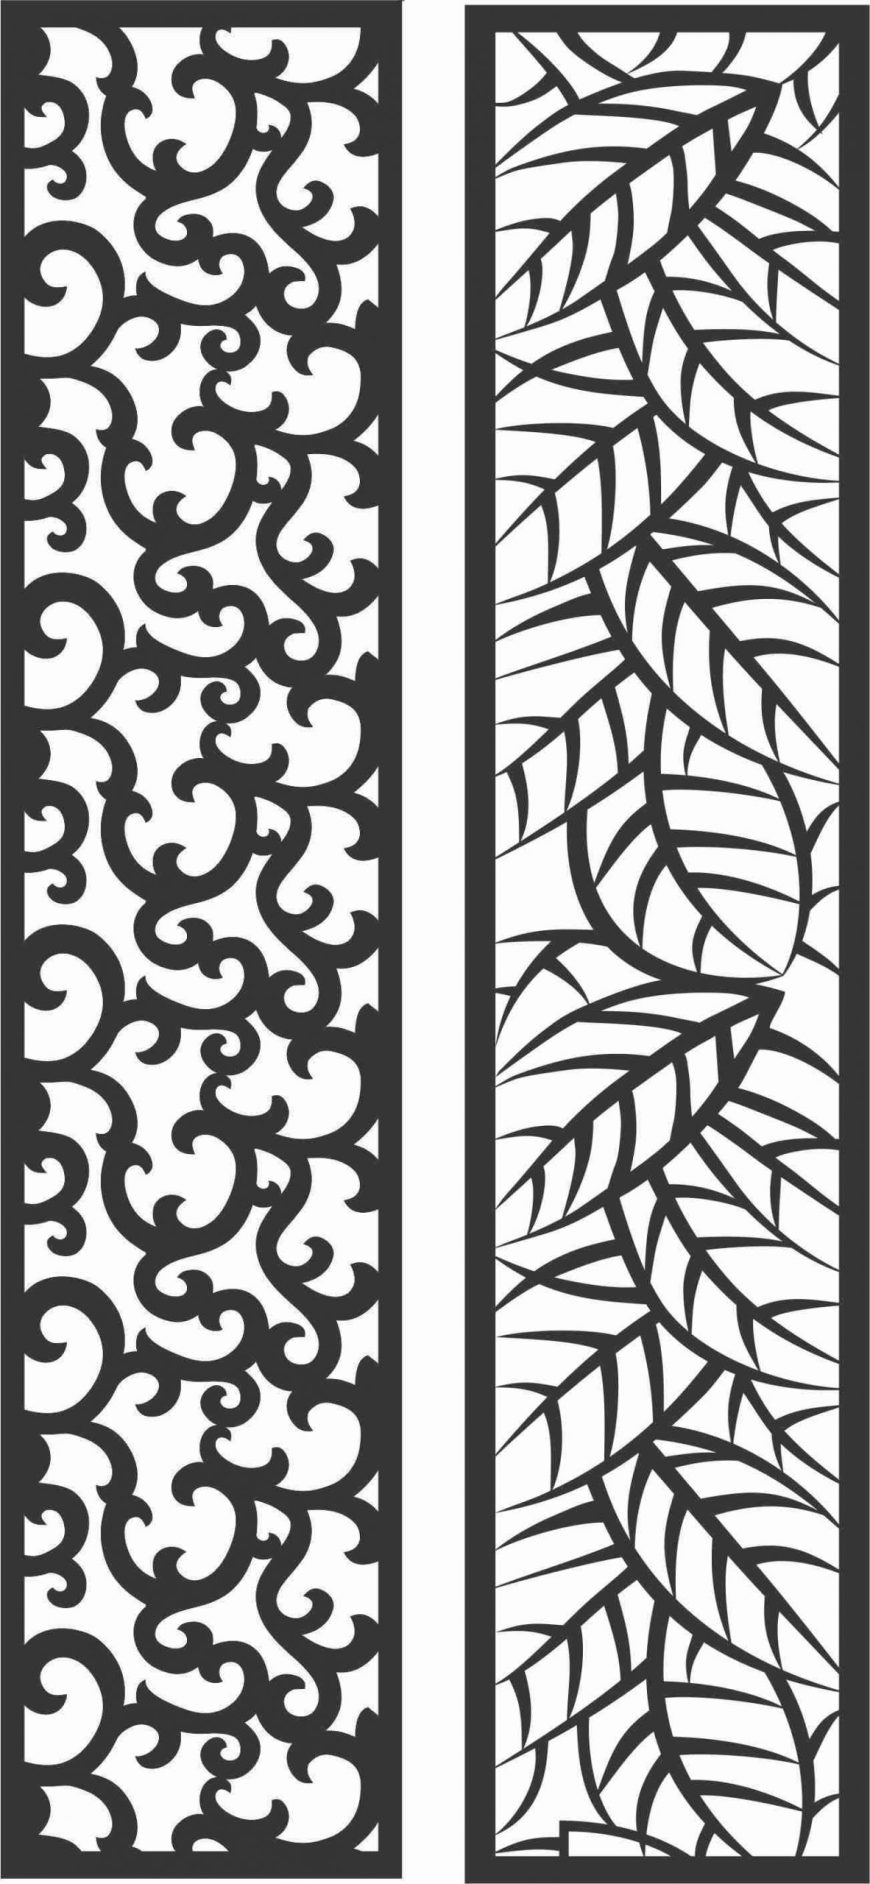 Decorative Screen Patterns For Laser Cutting 90 Free DXF File